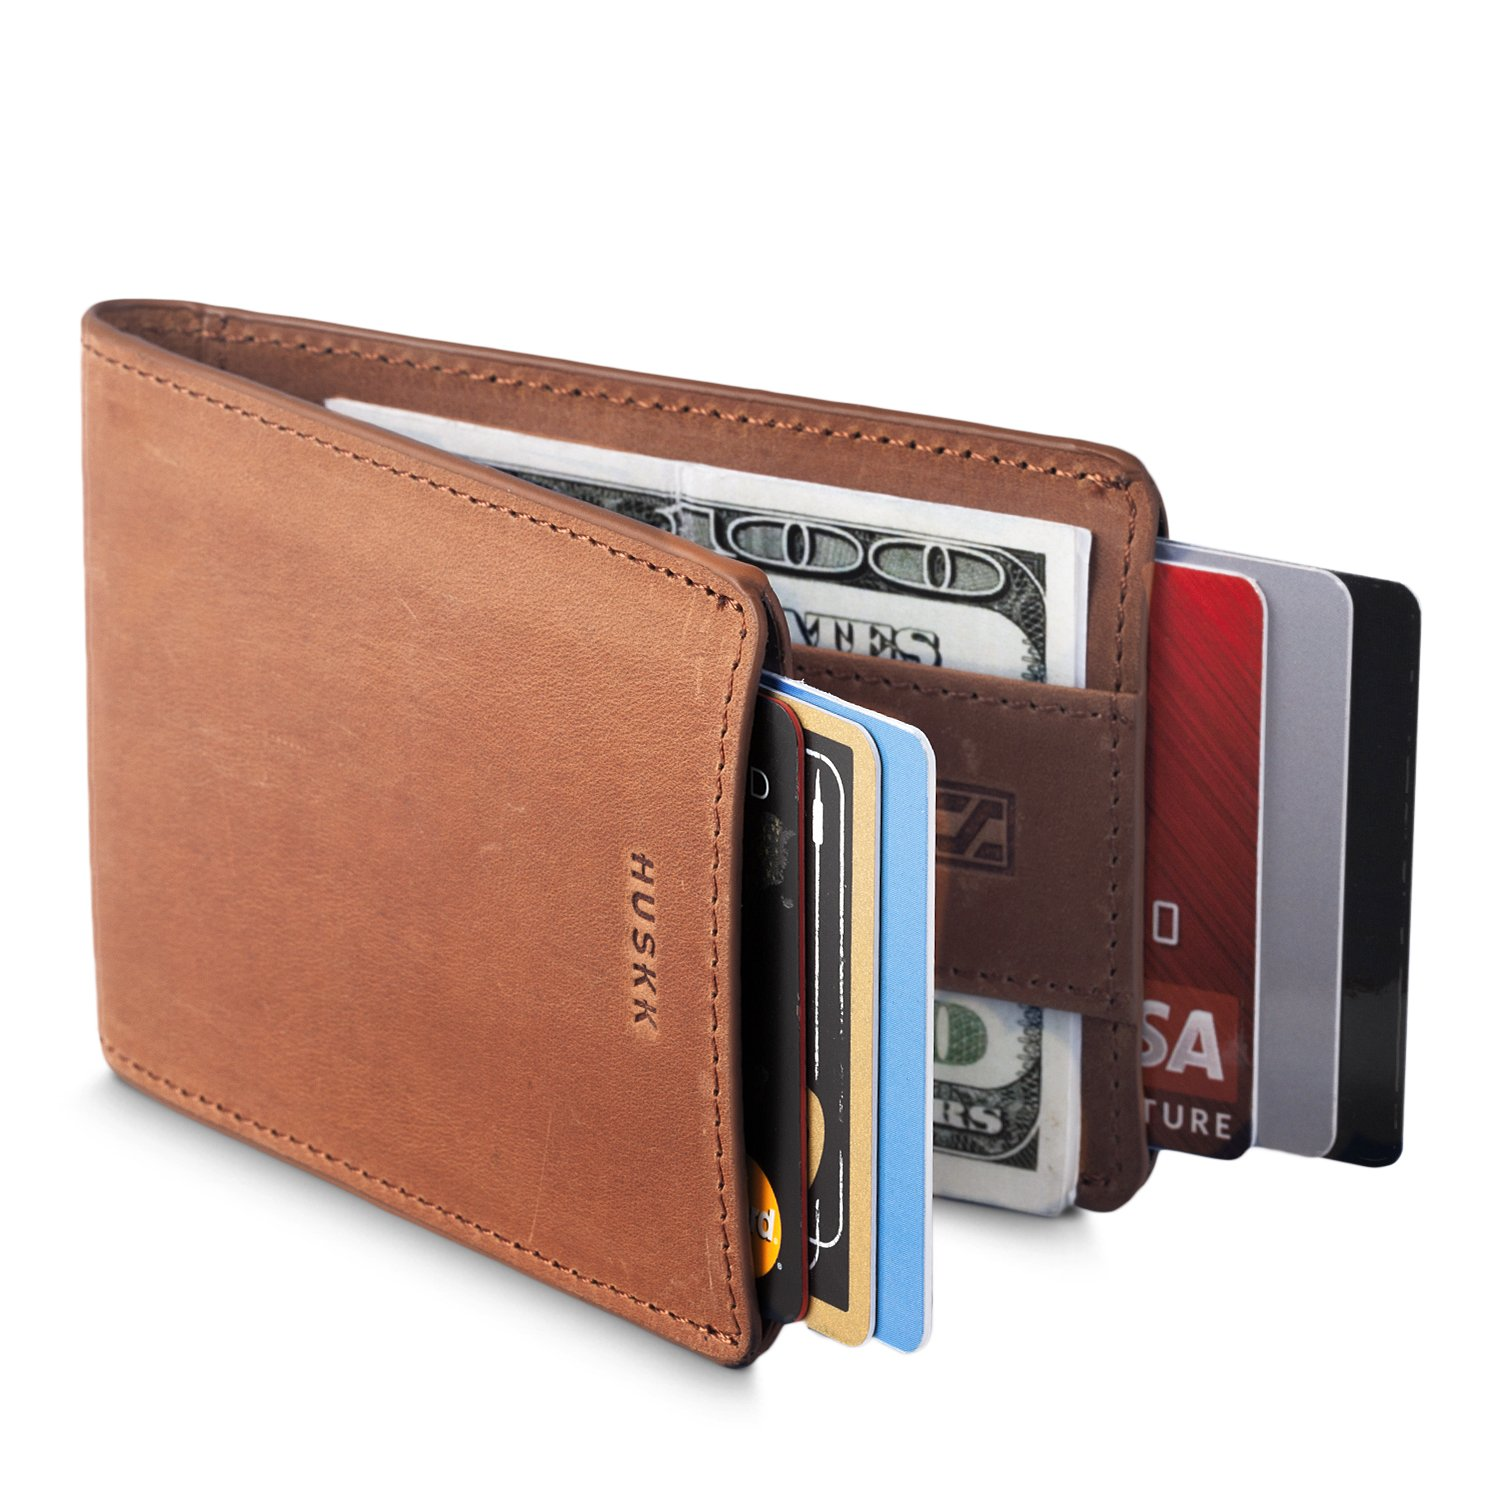 HUSKK Leather Wallet for Men - Credit Card Sleeve Holder With Money Strap [CSBW2-B]